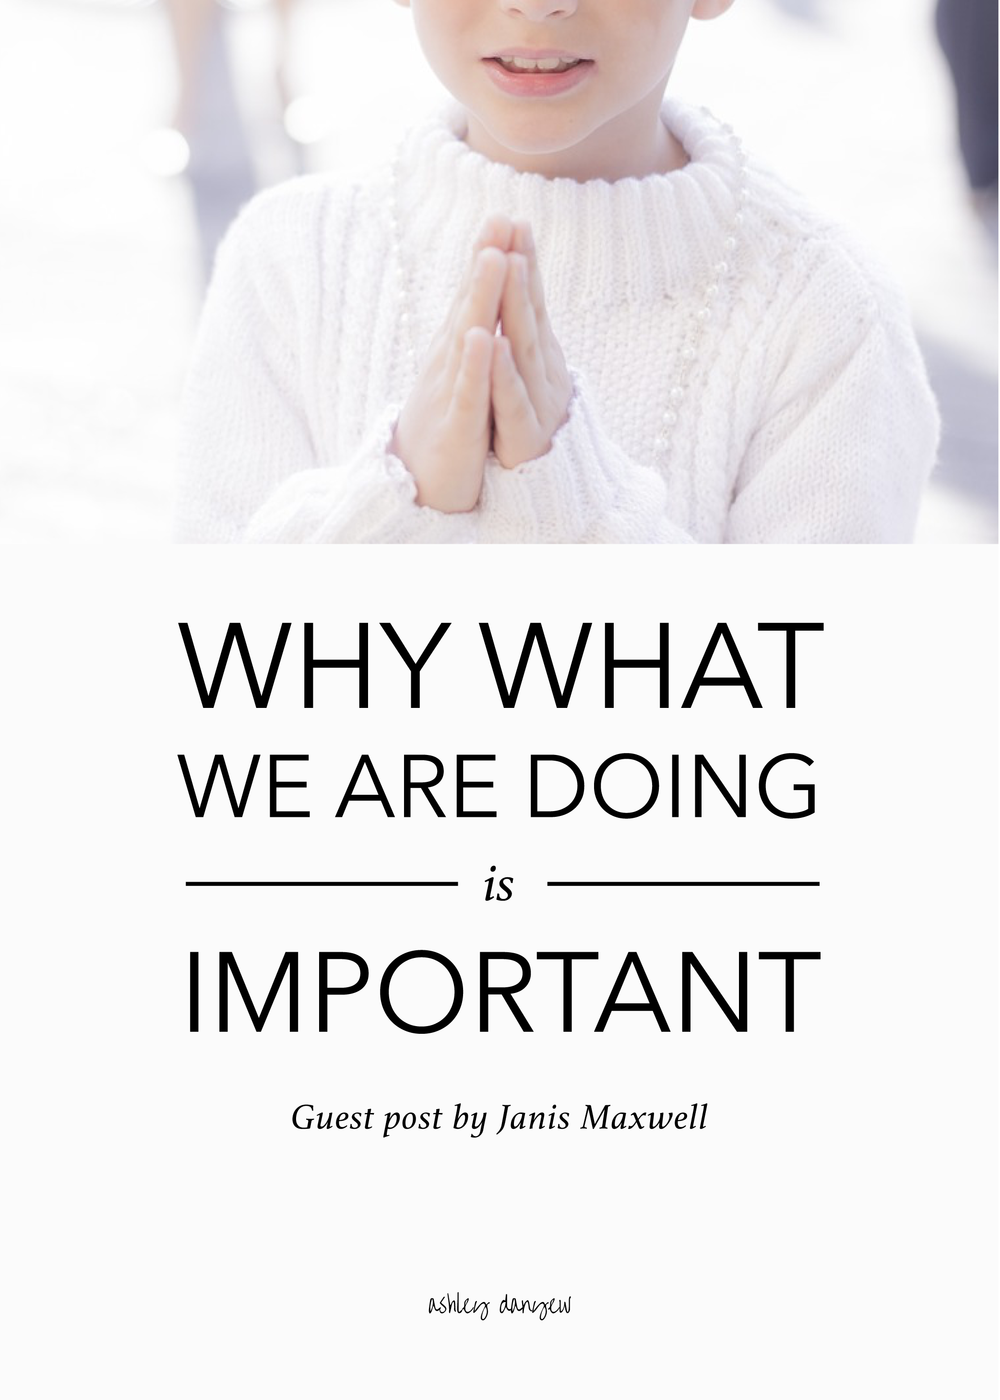 Copy of Why What We Are Doing is Important